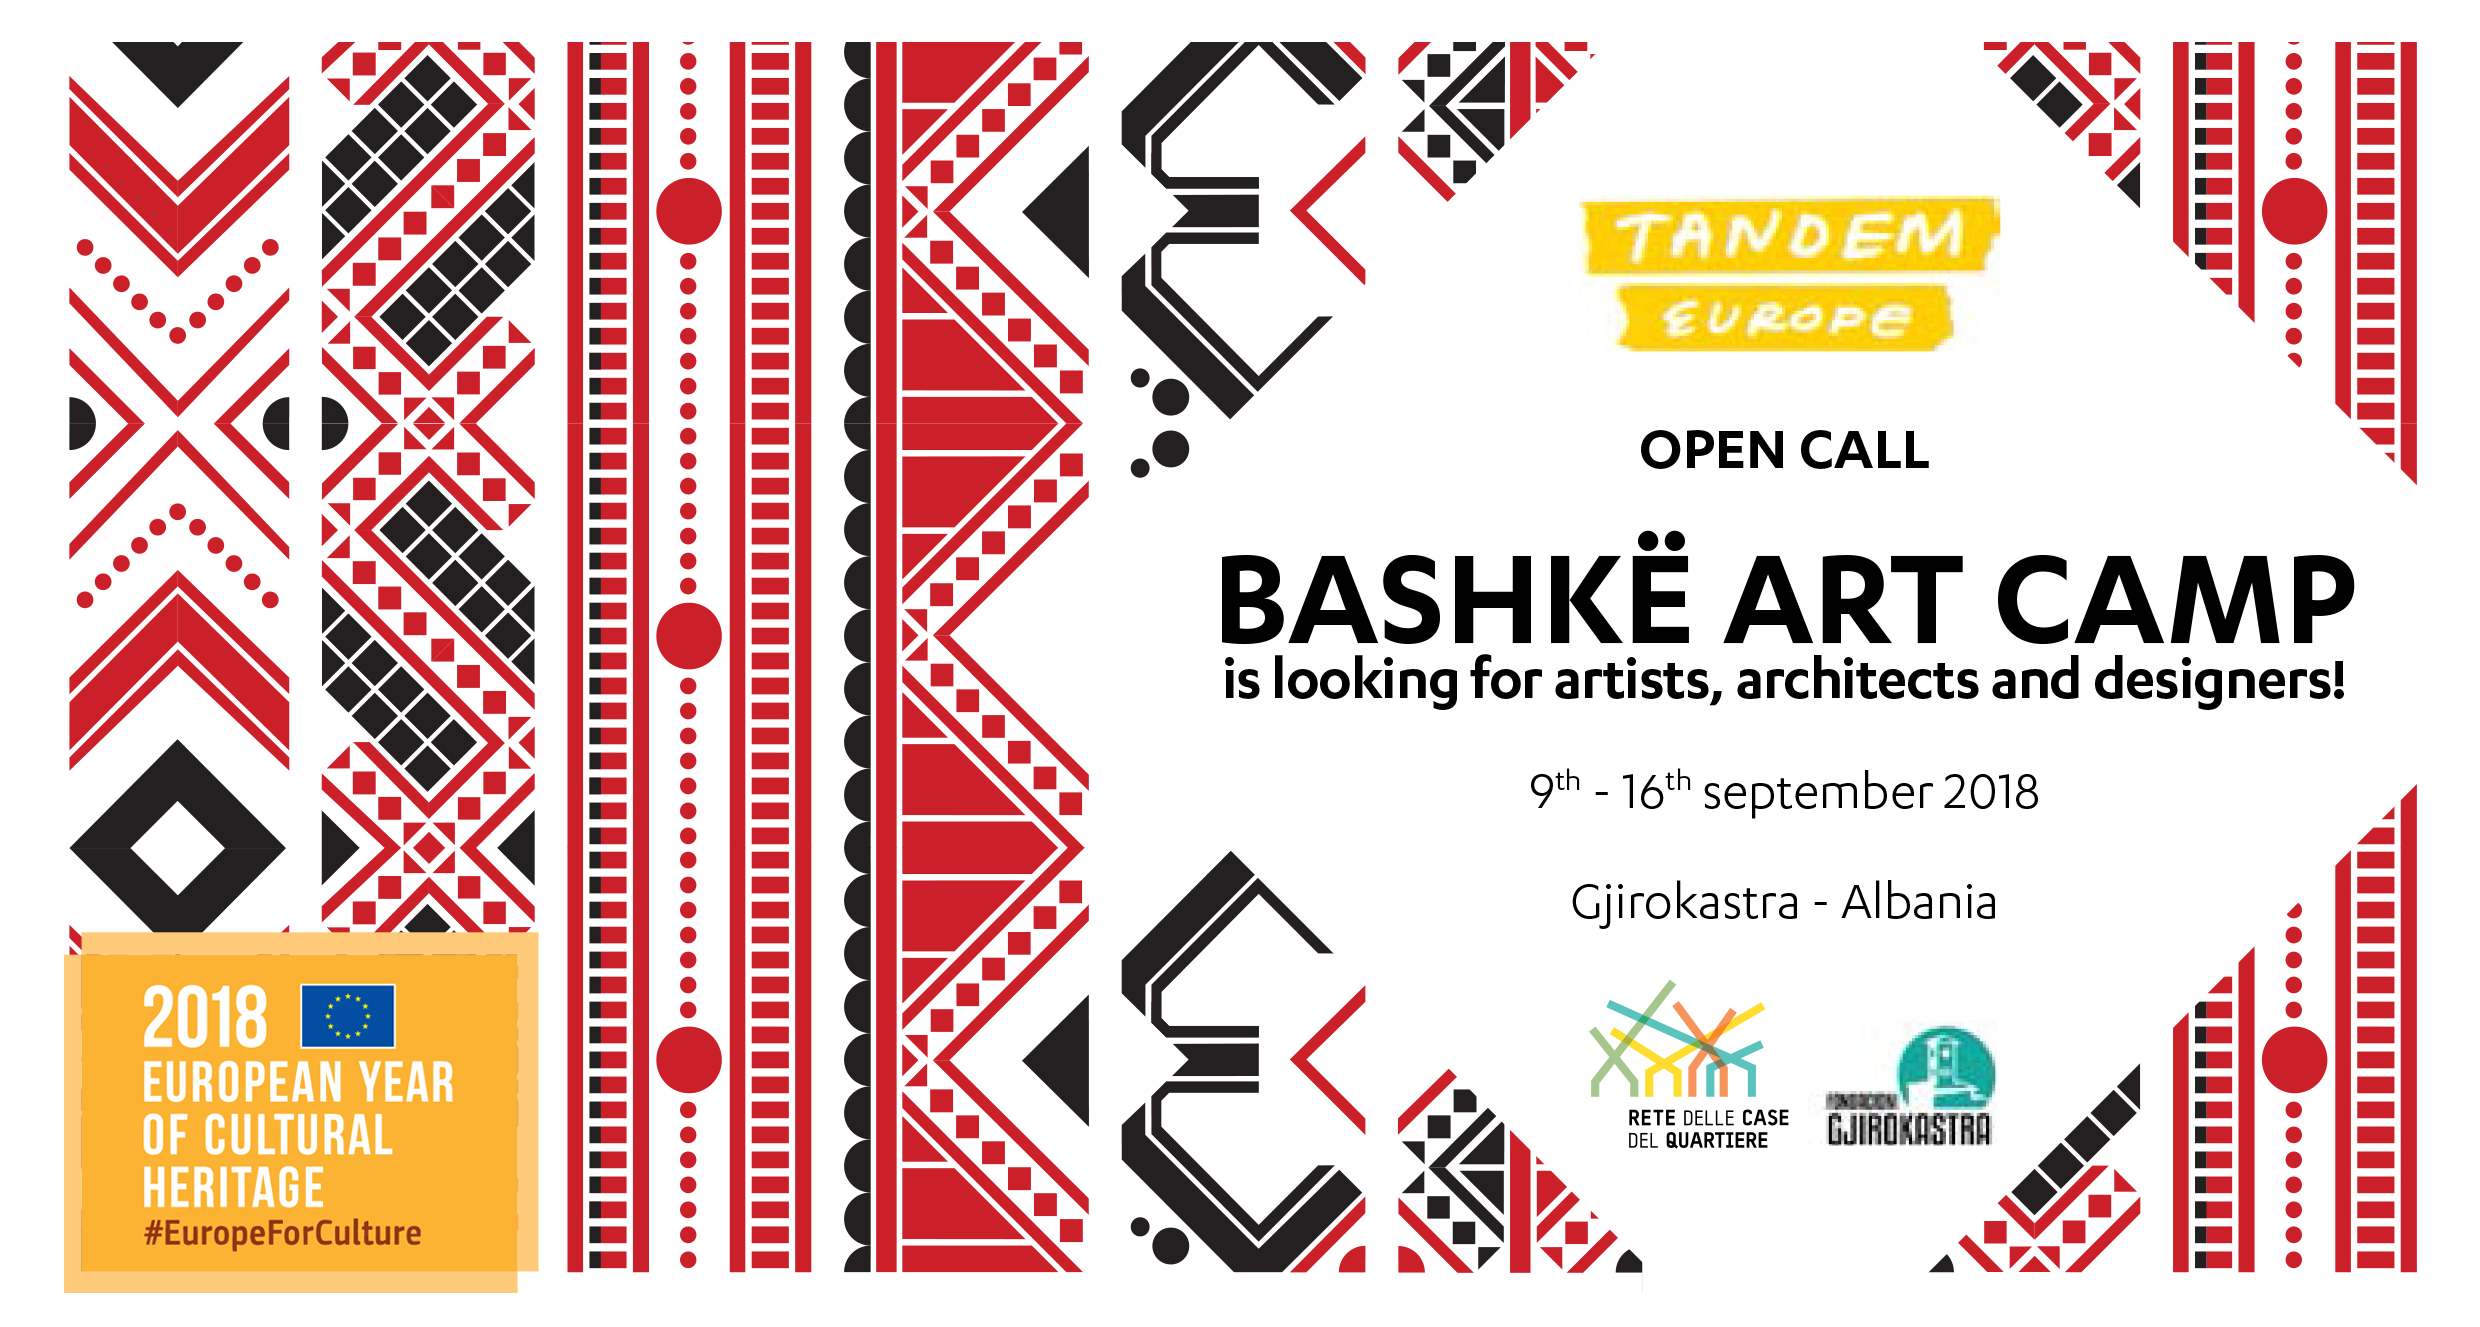 Aperta la CALL FOR APPLICATION per partecipare al BASHKË ART CAMP 2018!